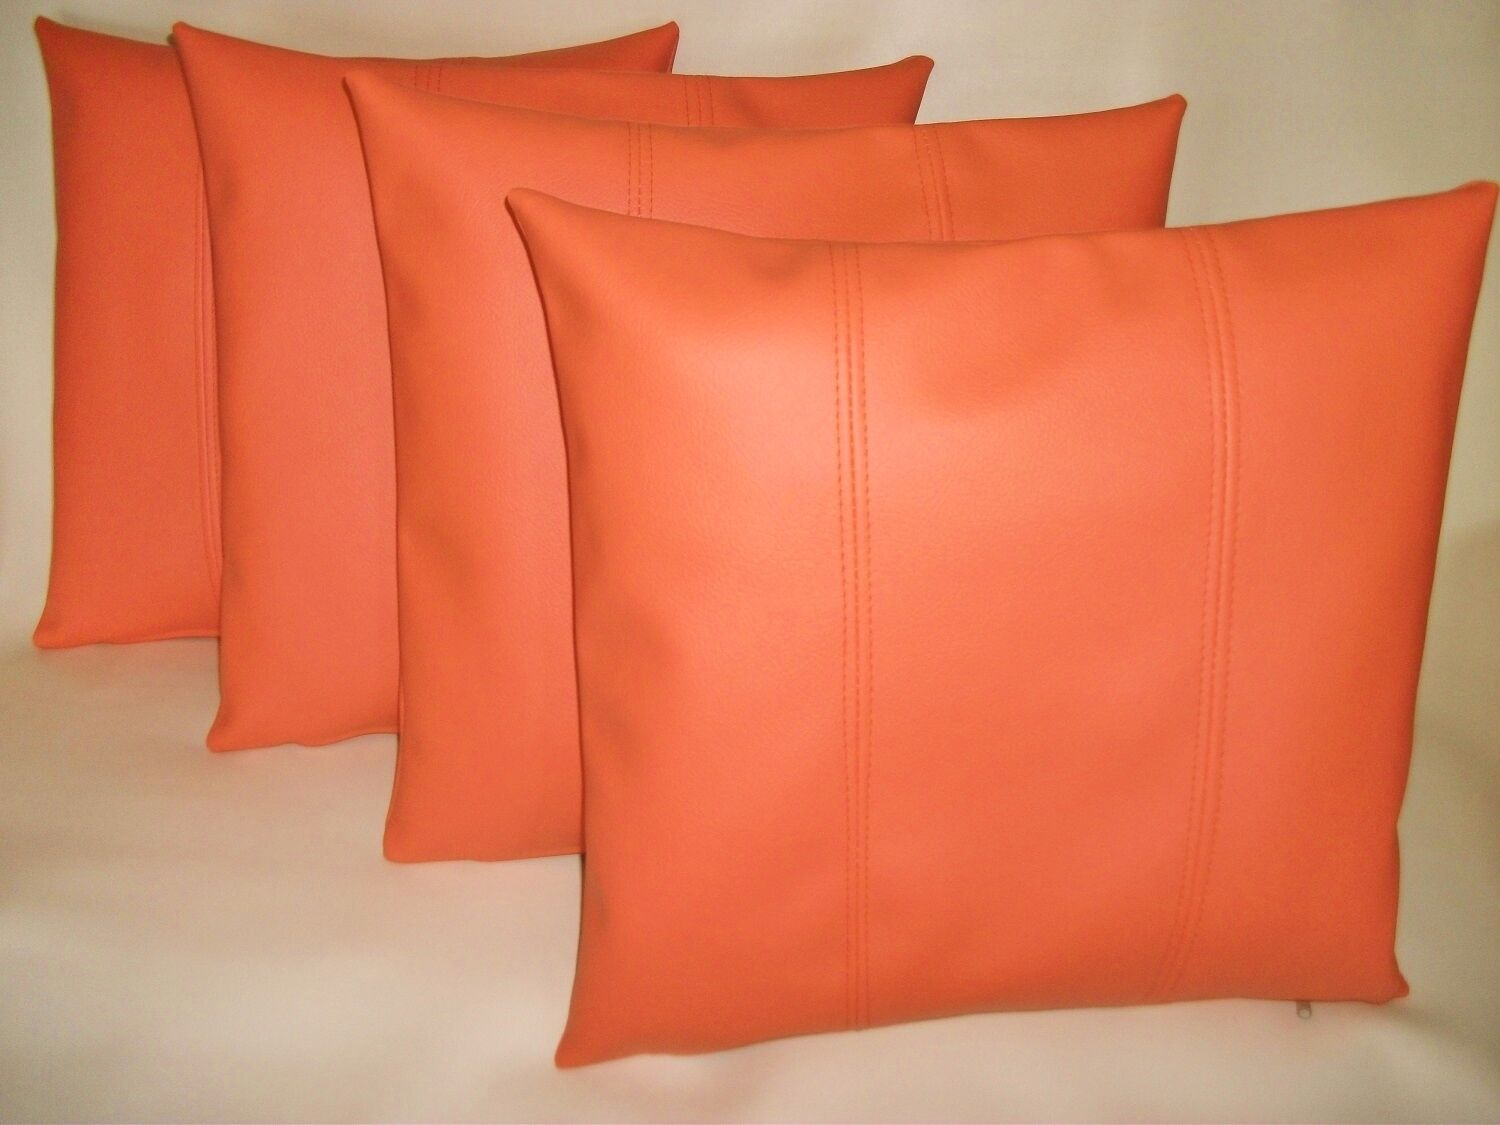 4 Orange Stripe Imitación Cuero Cushion Covers Almohadas de dispersión 16